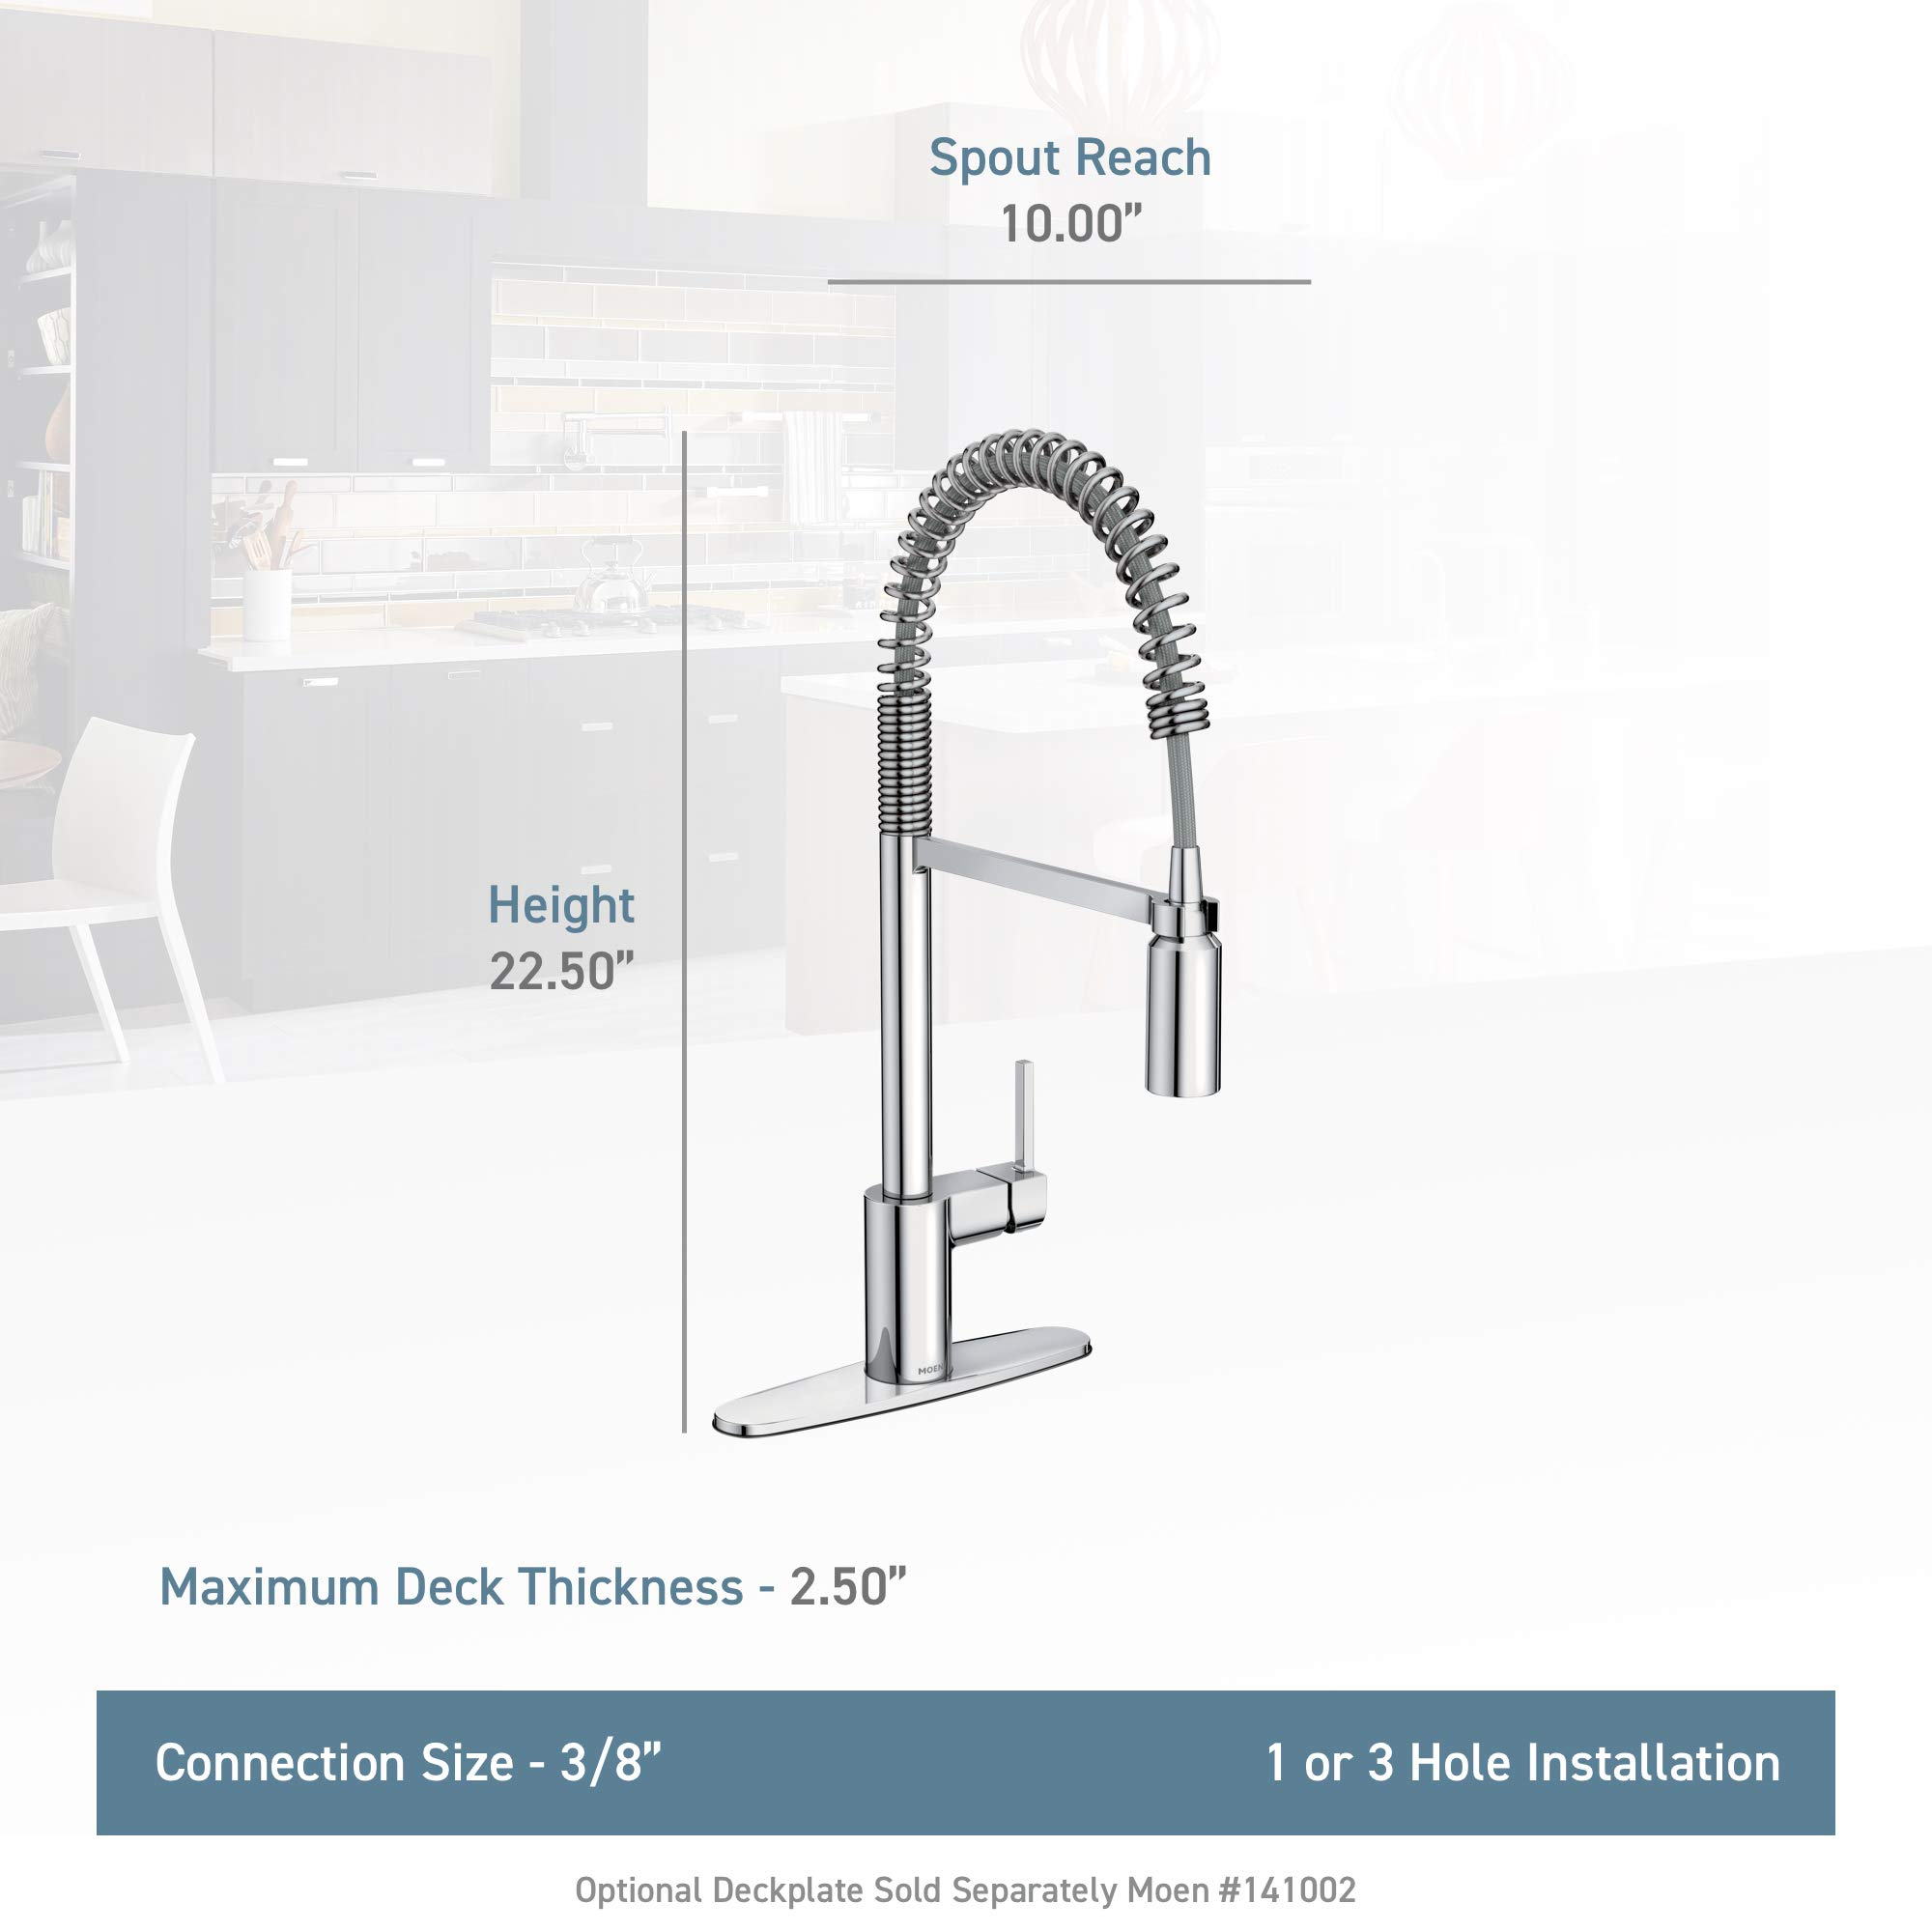 Moen 5923 Align One-Handle Pre-Rinse Spring Pulldown Kitchen Faucet with Power Clean, 1 count, Chrome by Moen (Image #3)